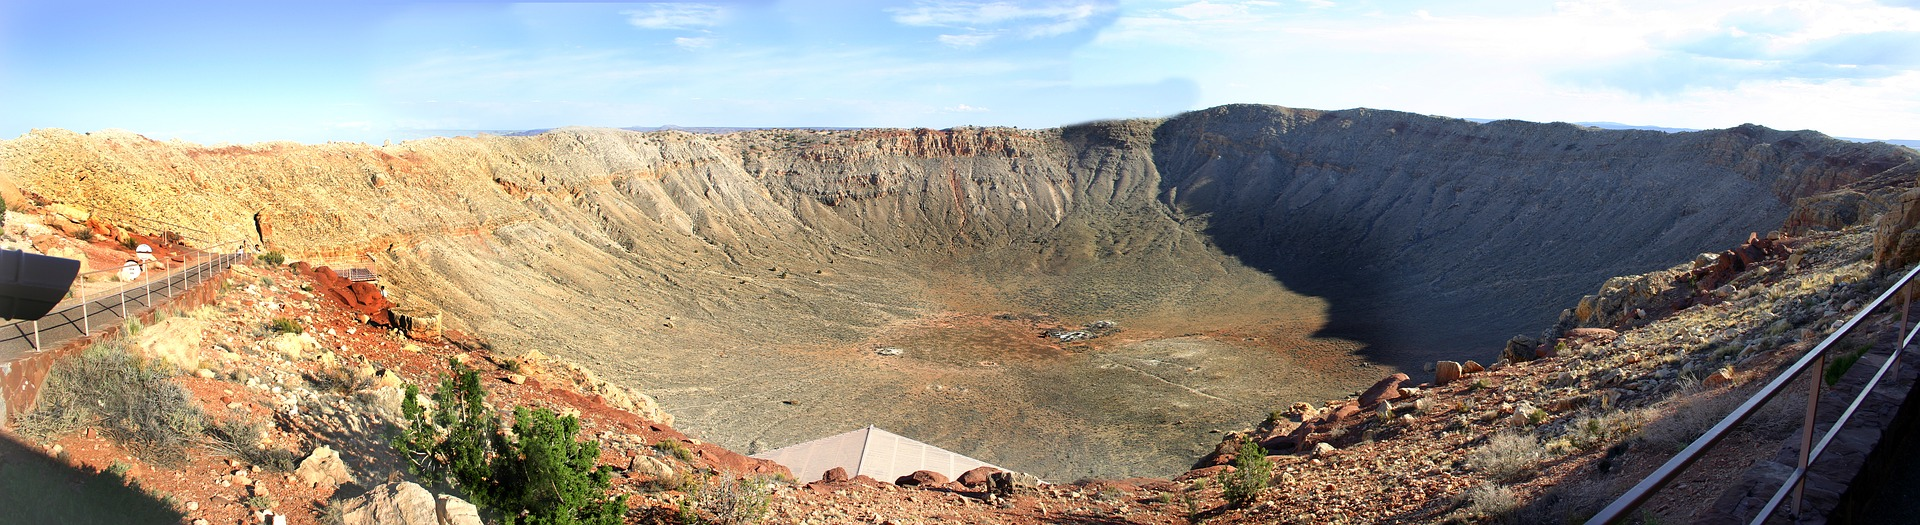 The Arizona Meteor Crater is the world's best preserved meteorite impact site on Earth, located off I-40 and Route 66 in Northern Arizona near Winslow.